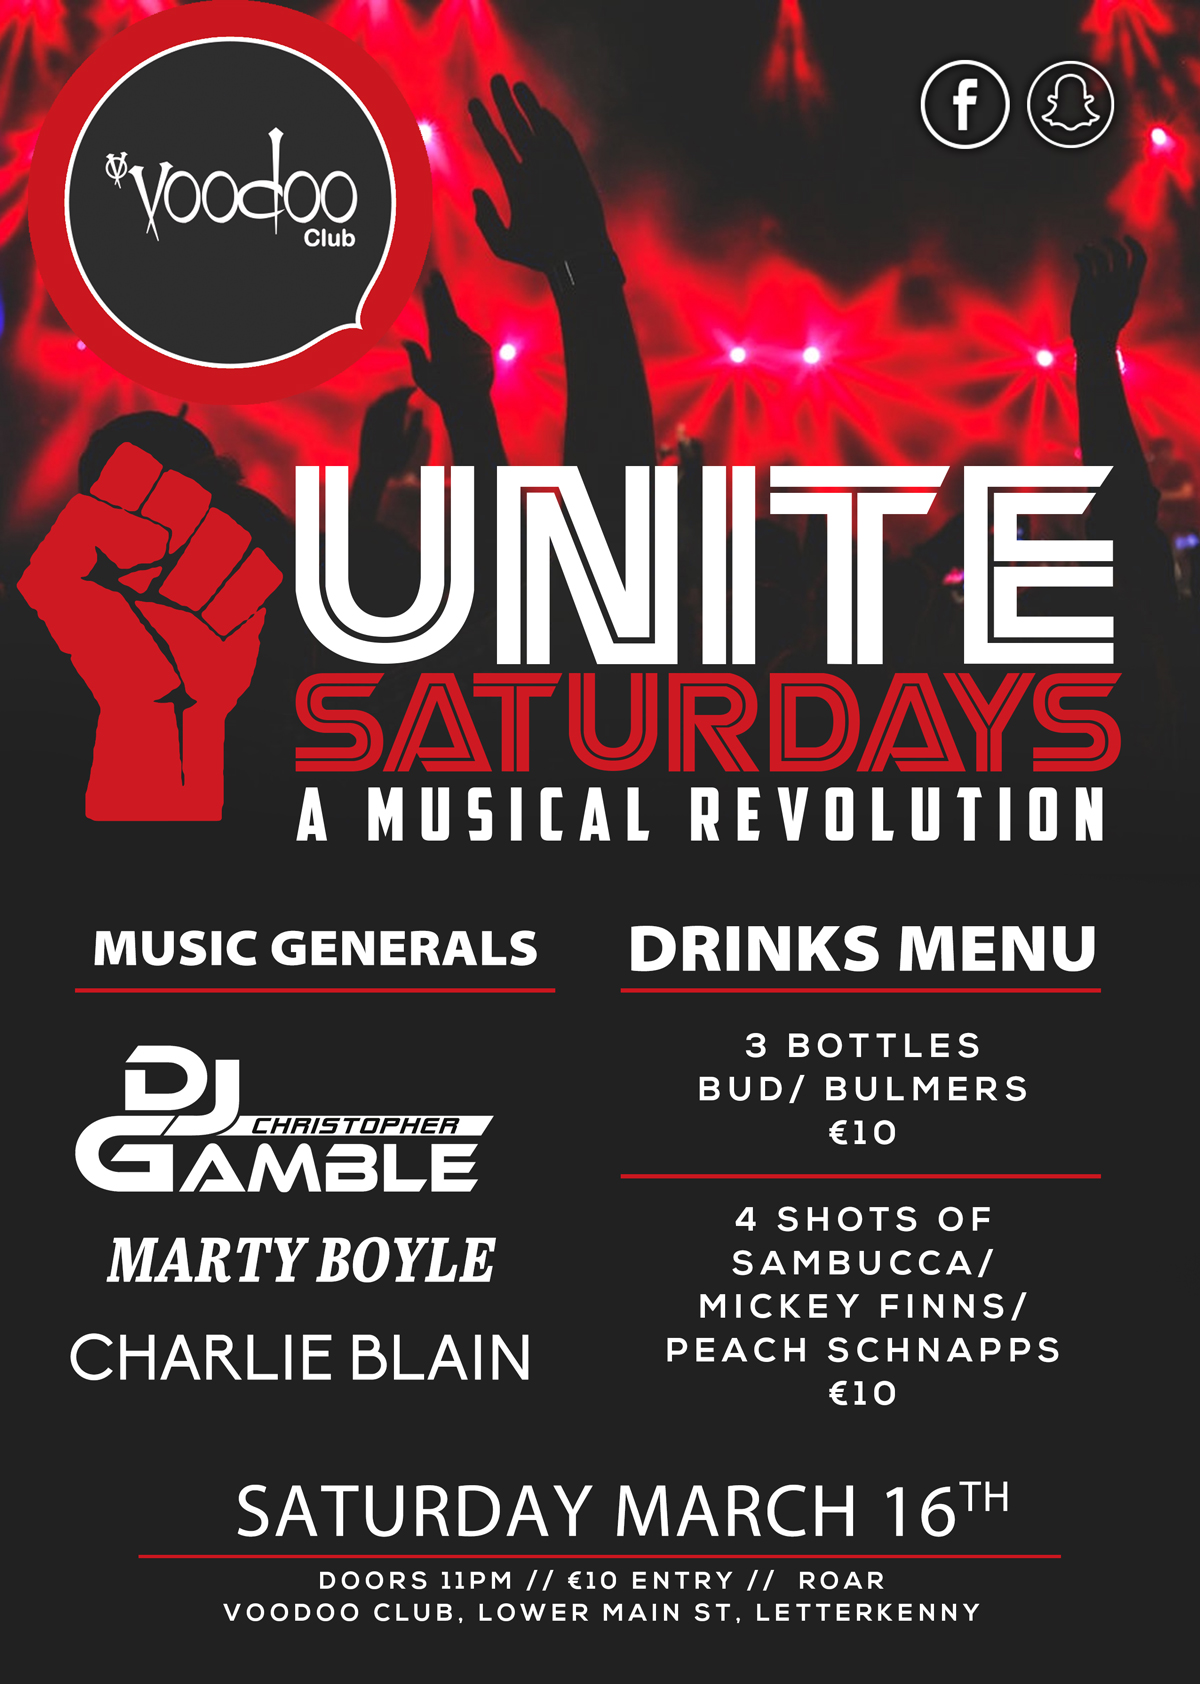 voodoo-venue---unite-saturdays-sat-mar-16-2019.jpg